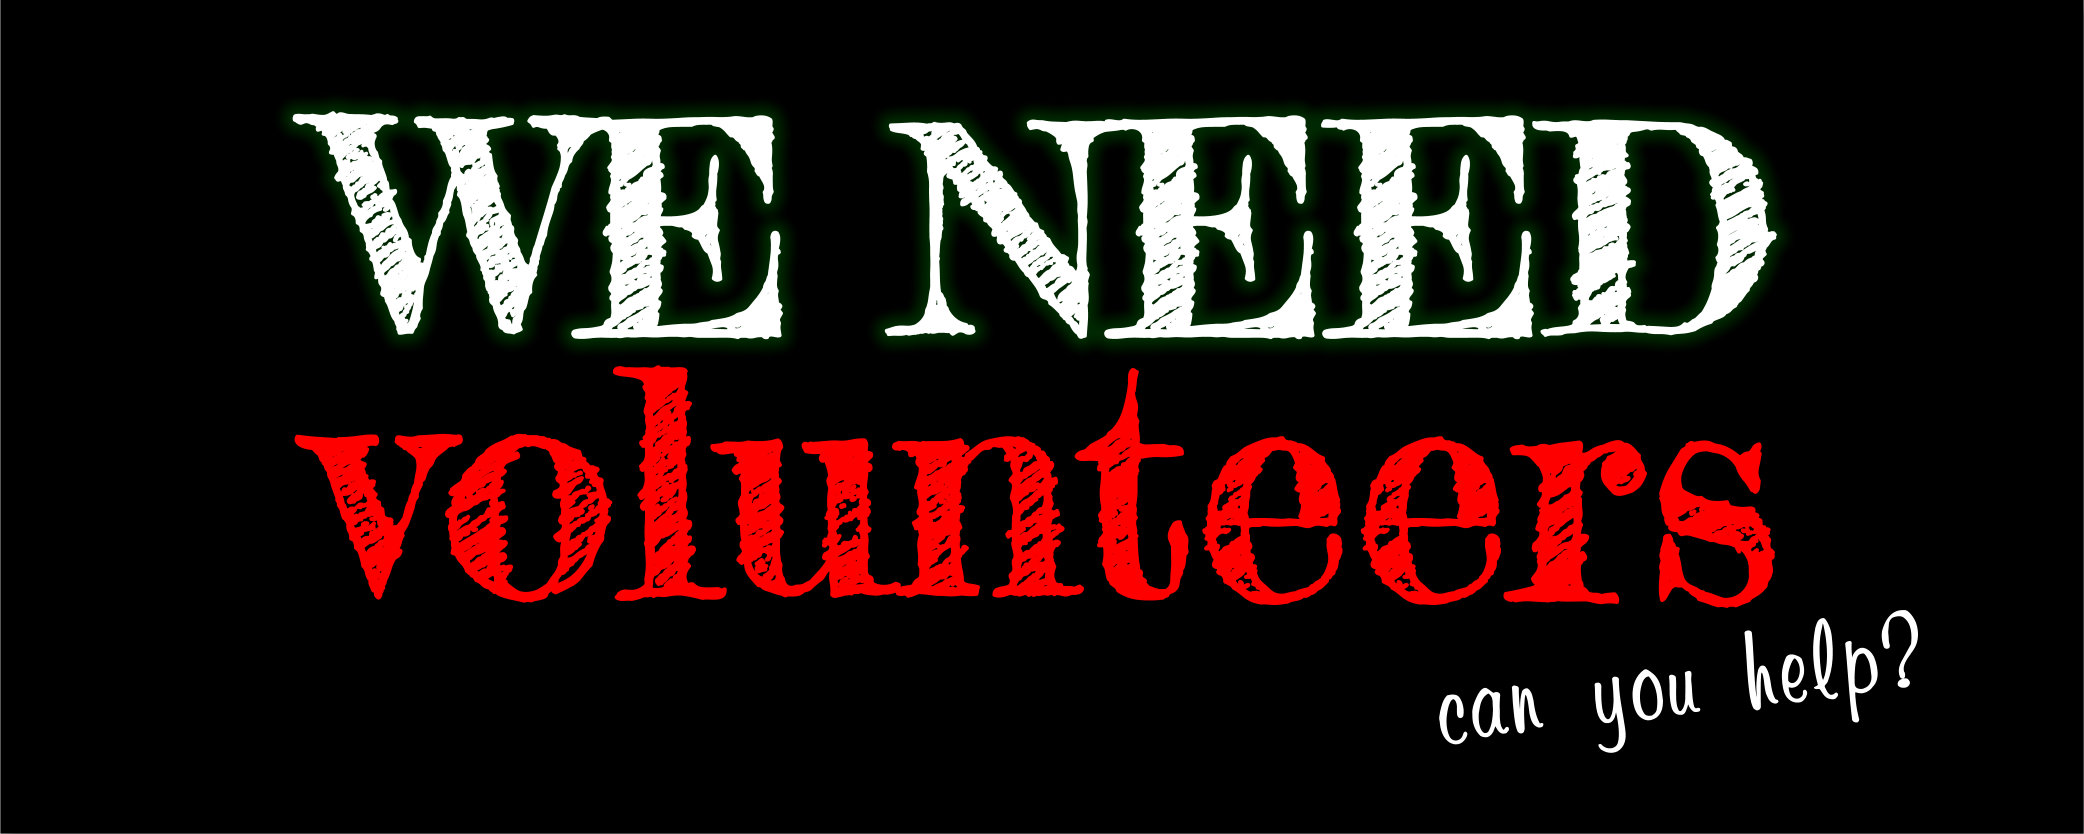 we-need-volunteers-october-2016